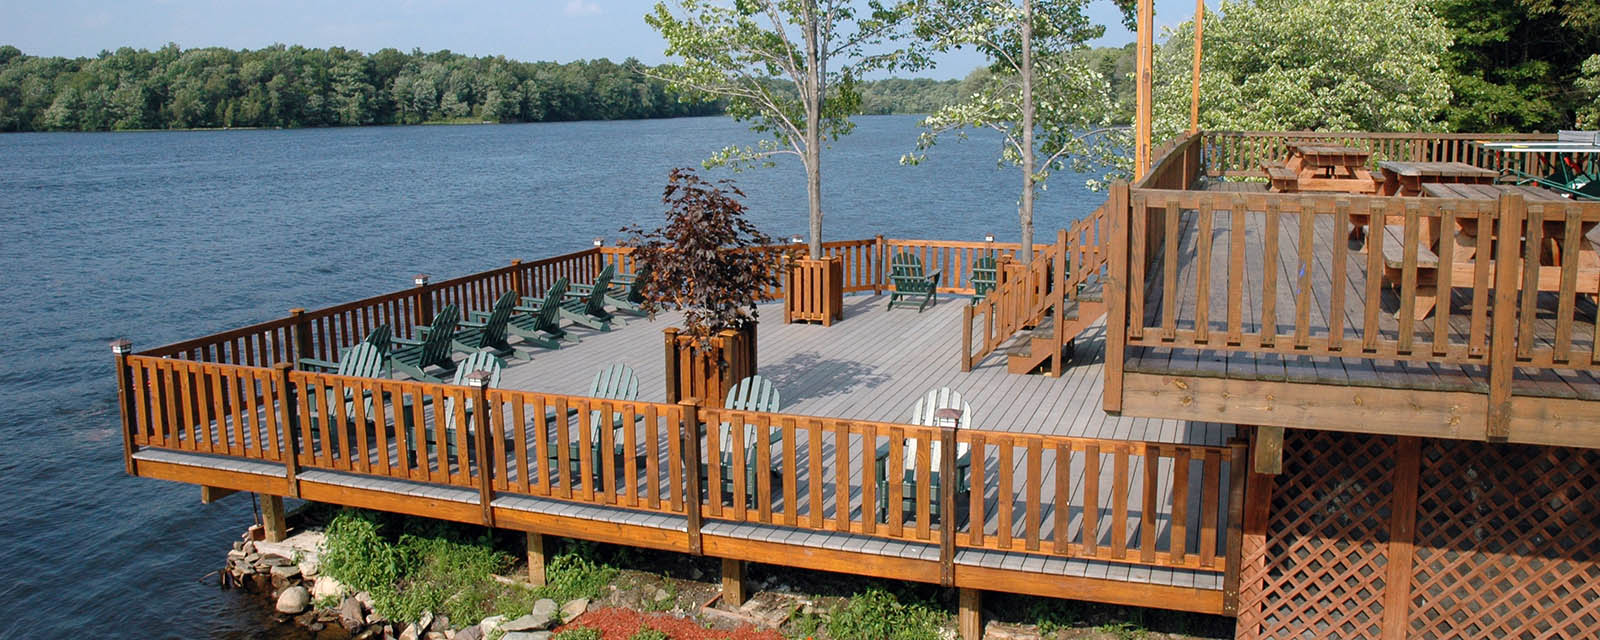 boathouse deck overlooking trout lake